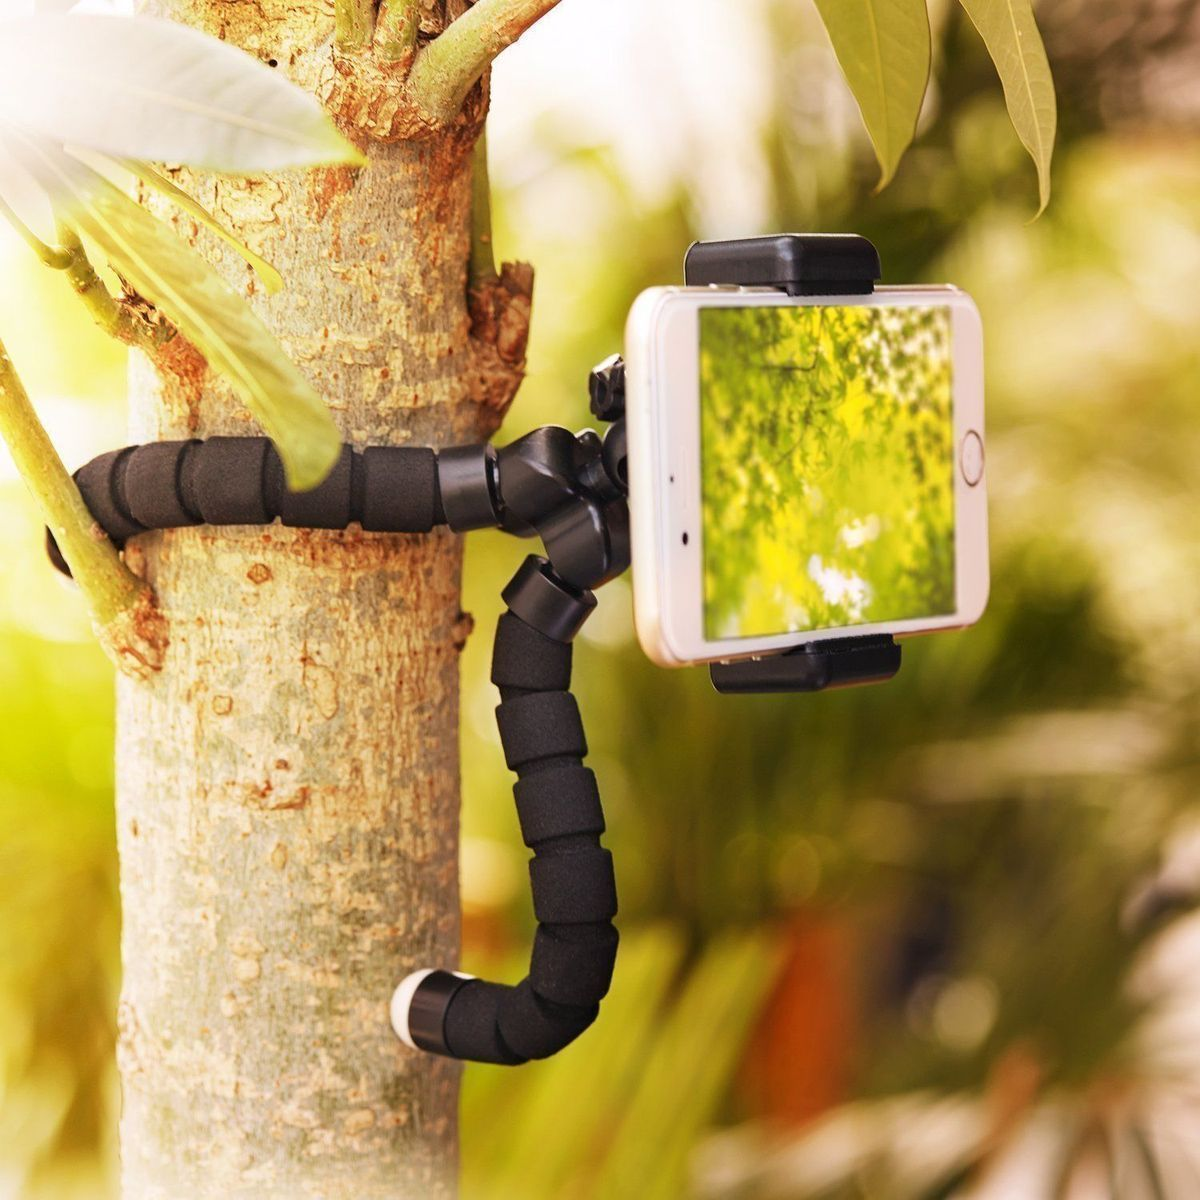 Bluetooth Flexible 360° Cell Phone Stand-HOME & GARDEN-zadame.com-zadame.com